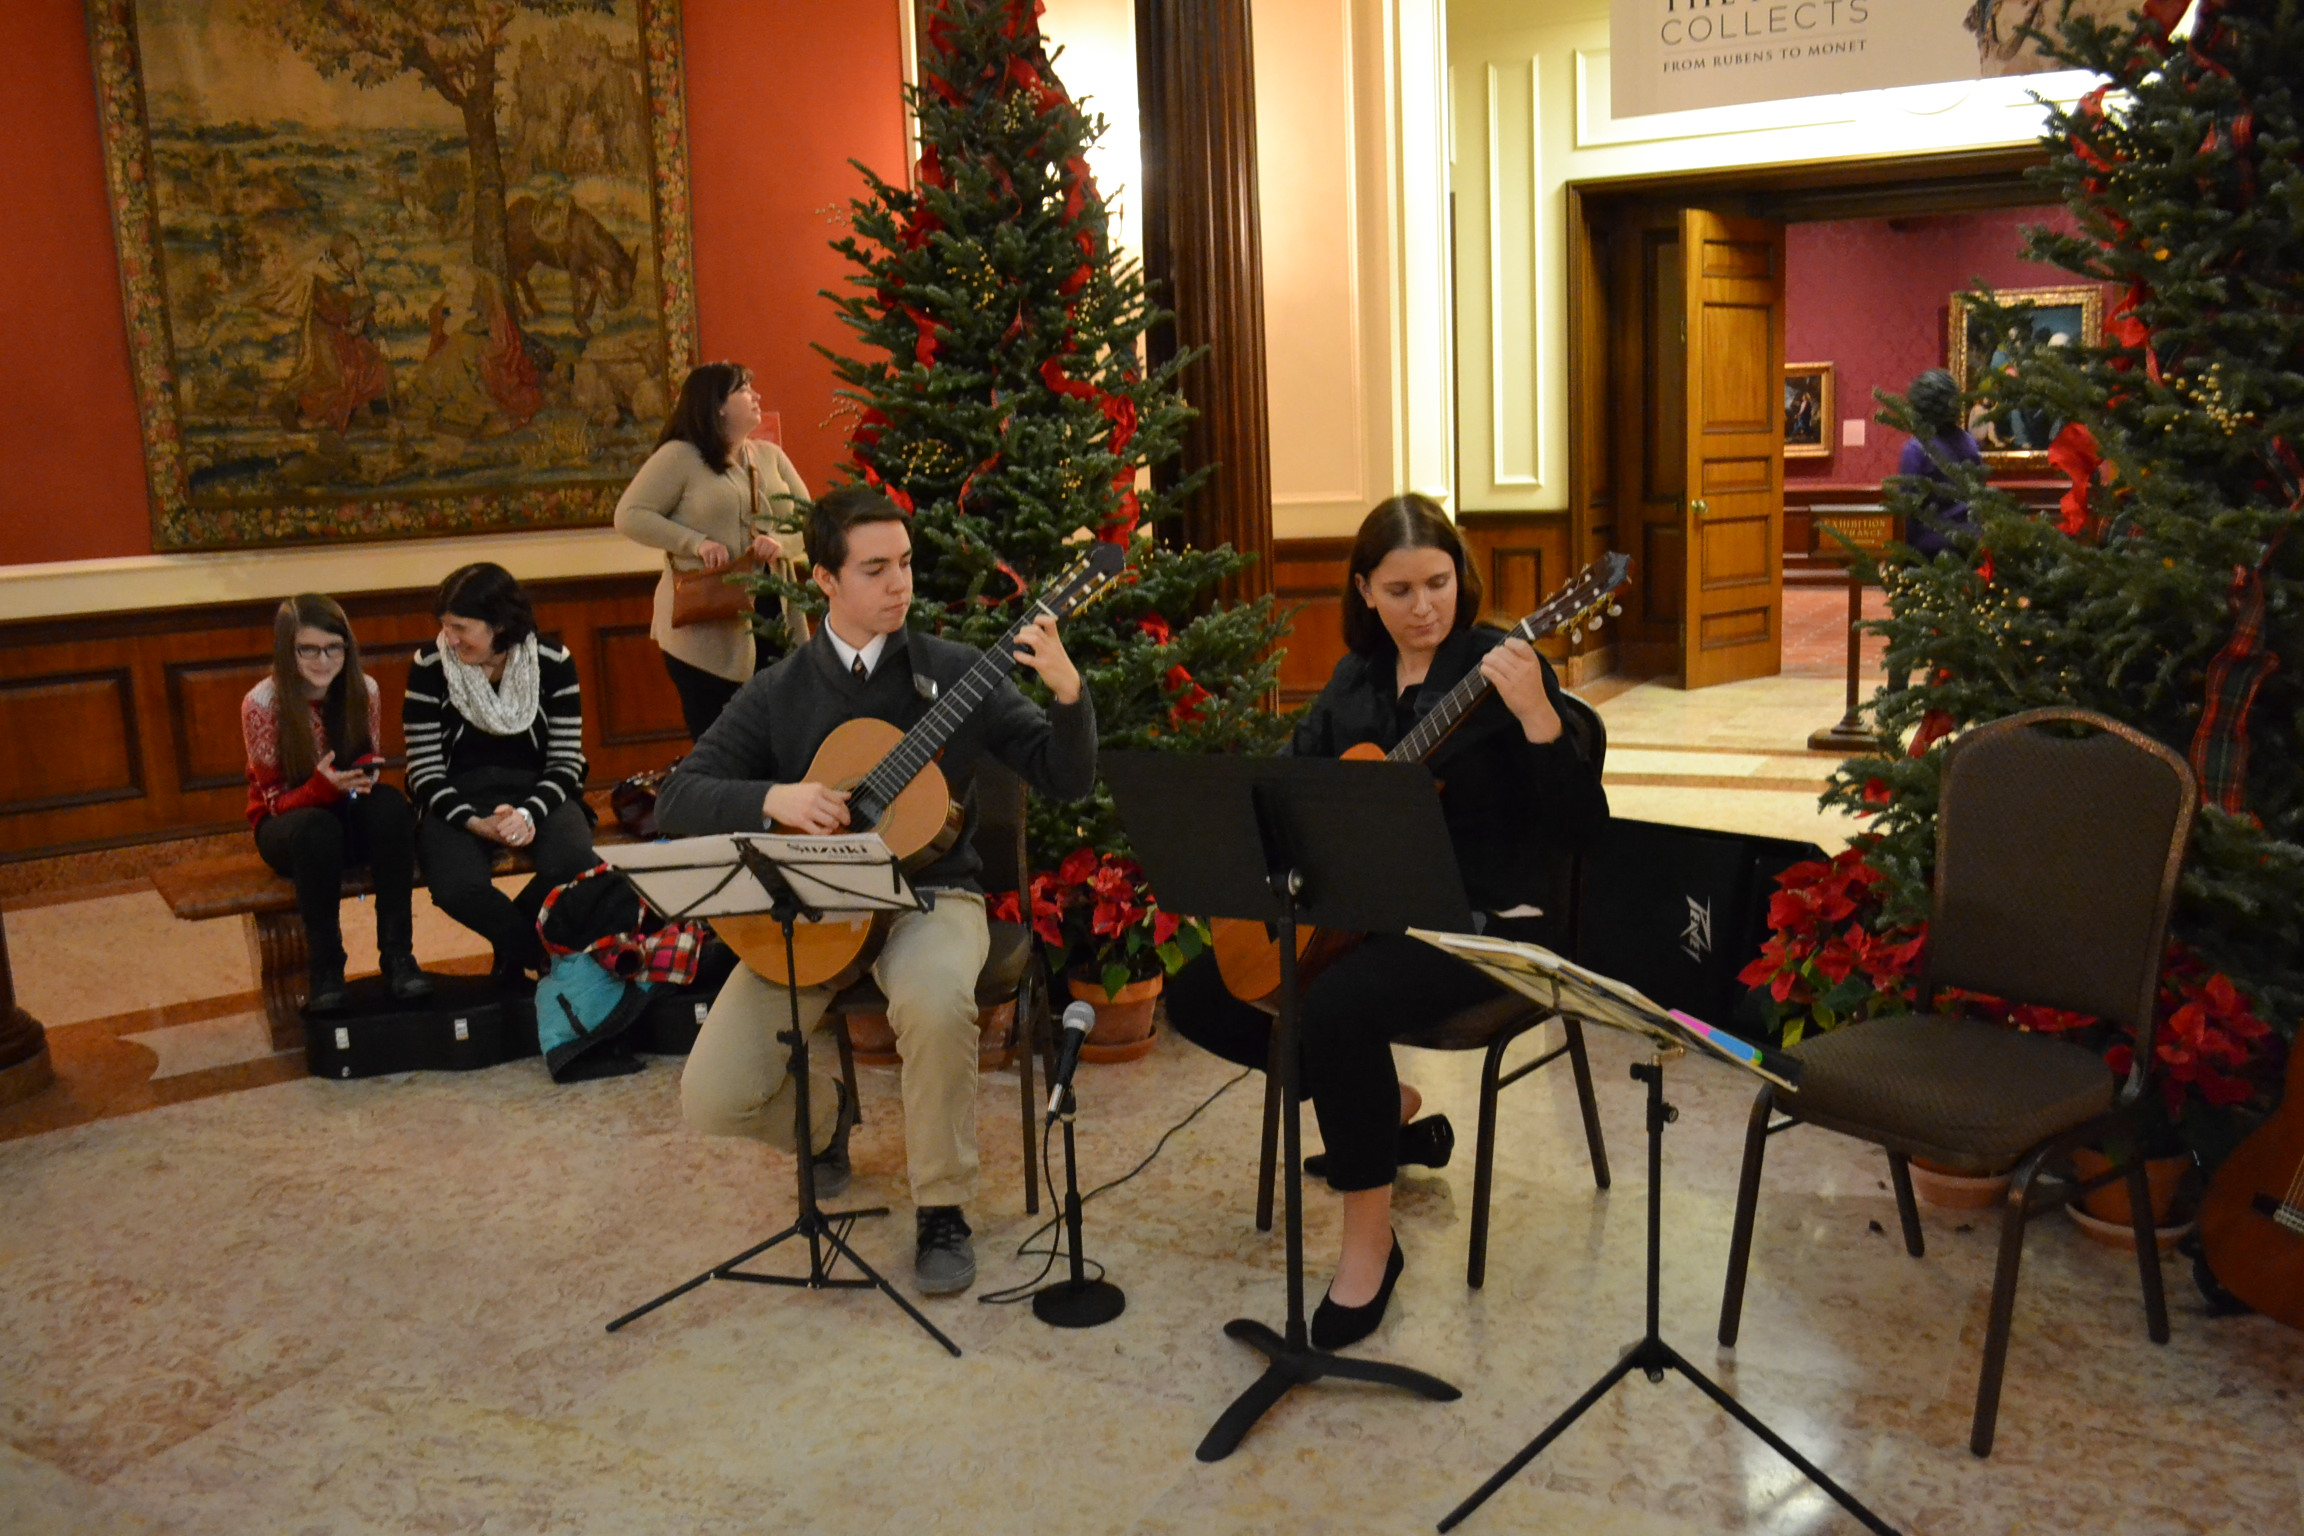 Benjamin Solomon and Allison Spear form the Chamber Guitar group, playing at the Frick Museum